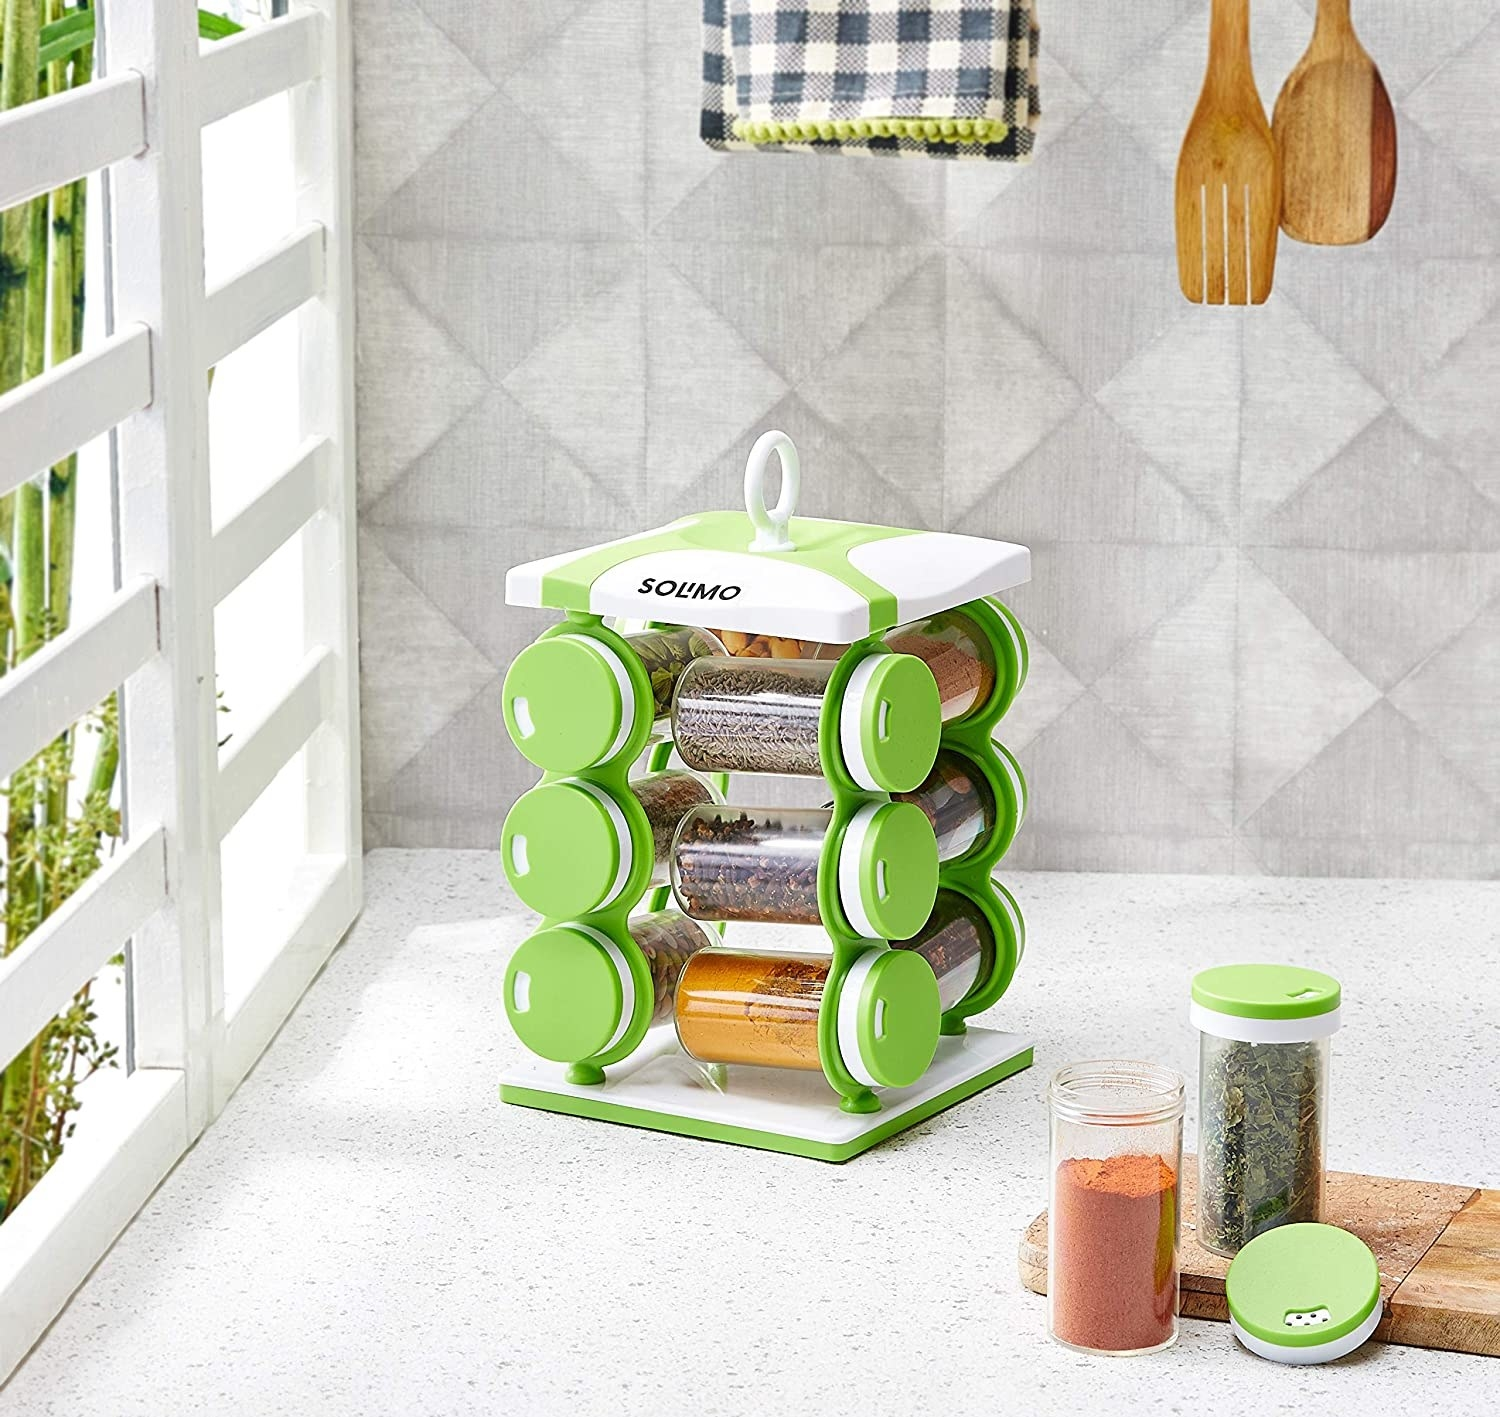 A rotating spice racks with spices in it